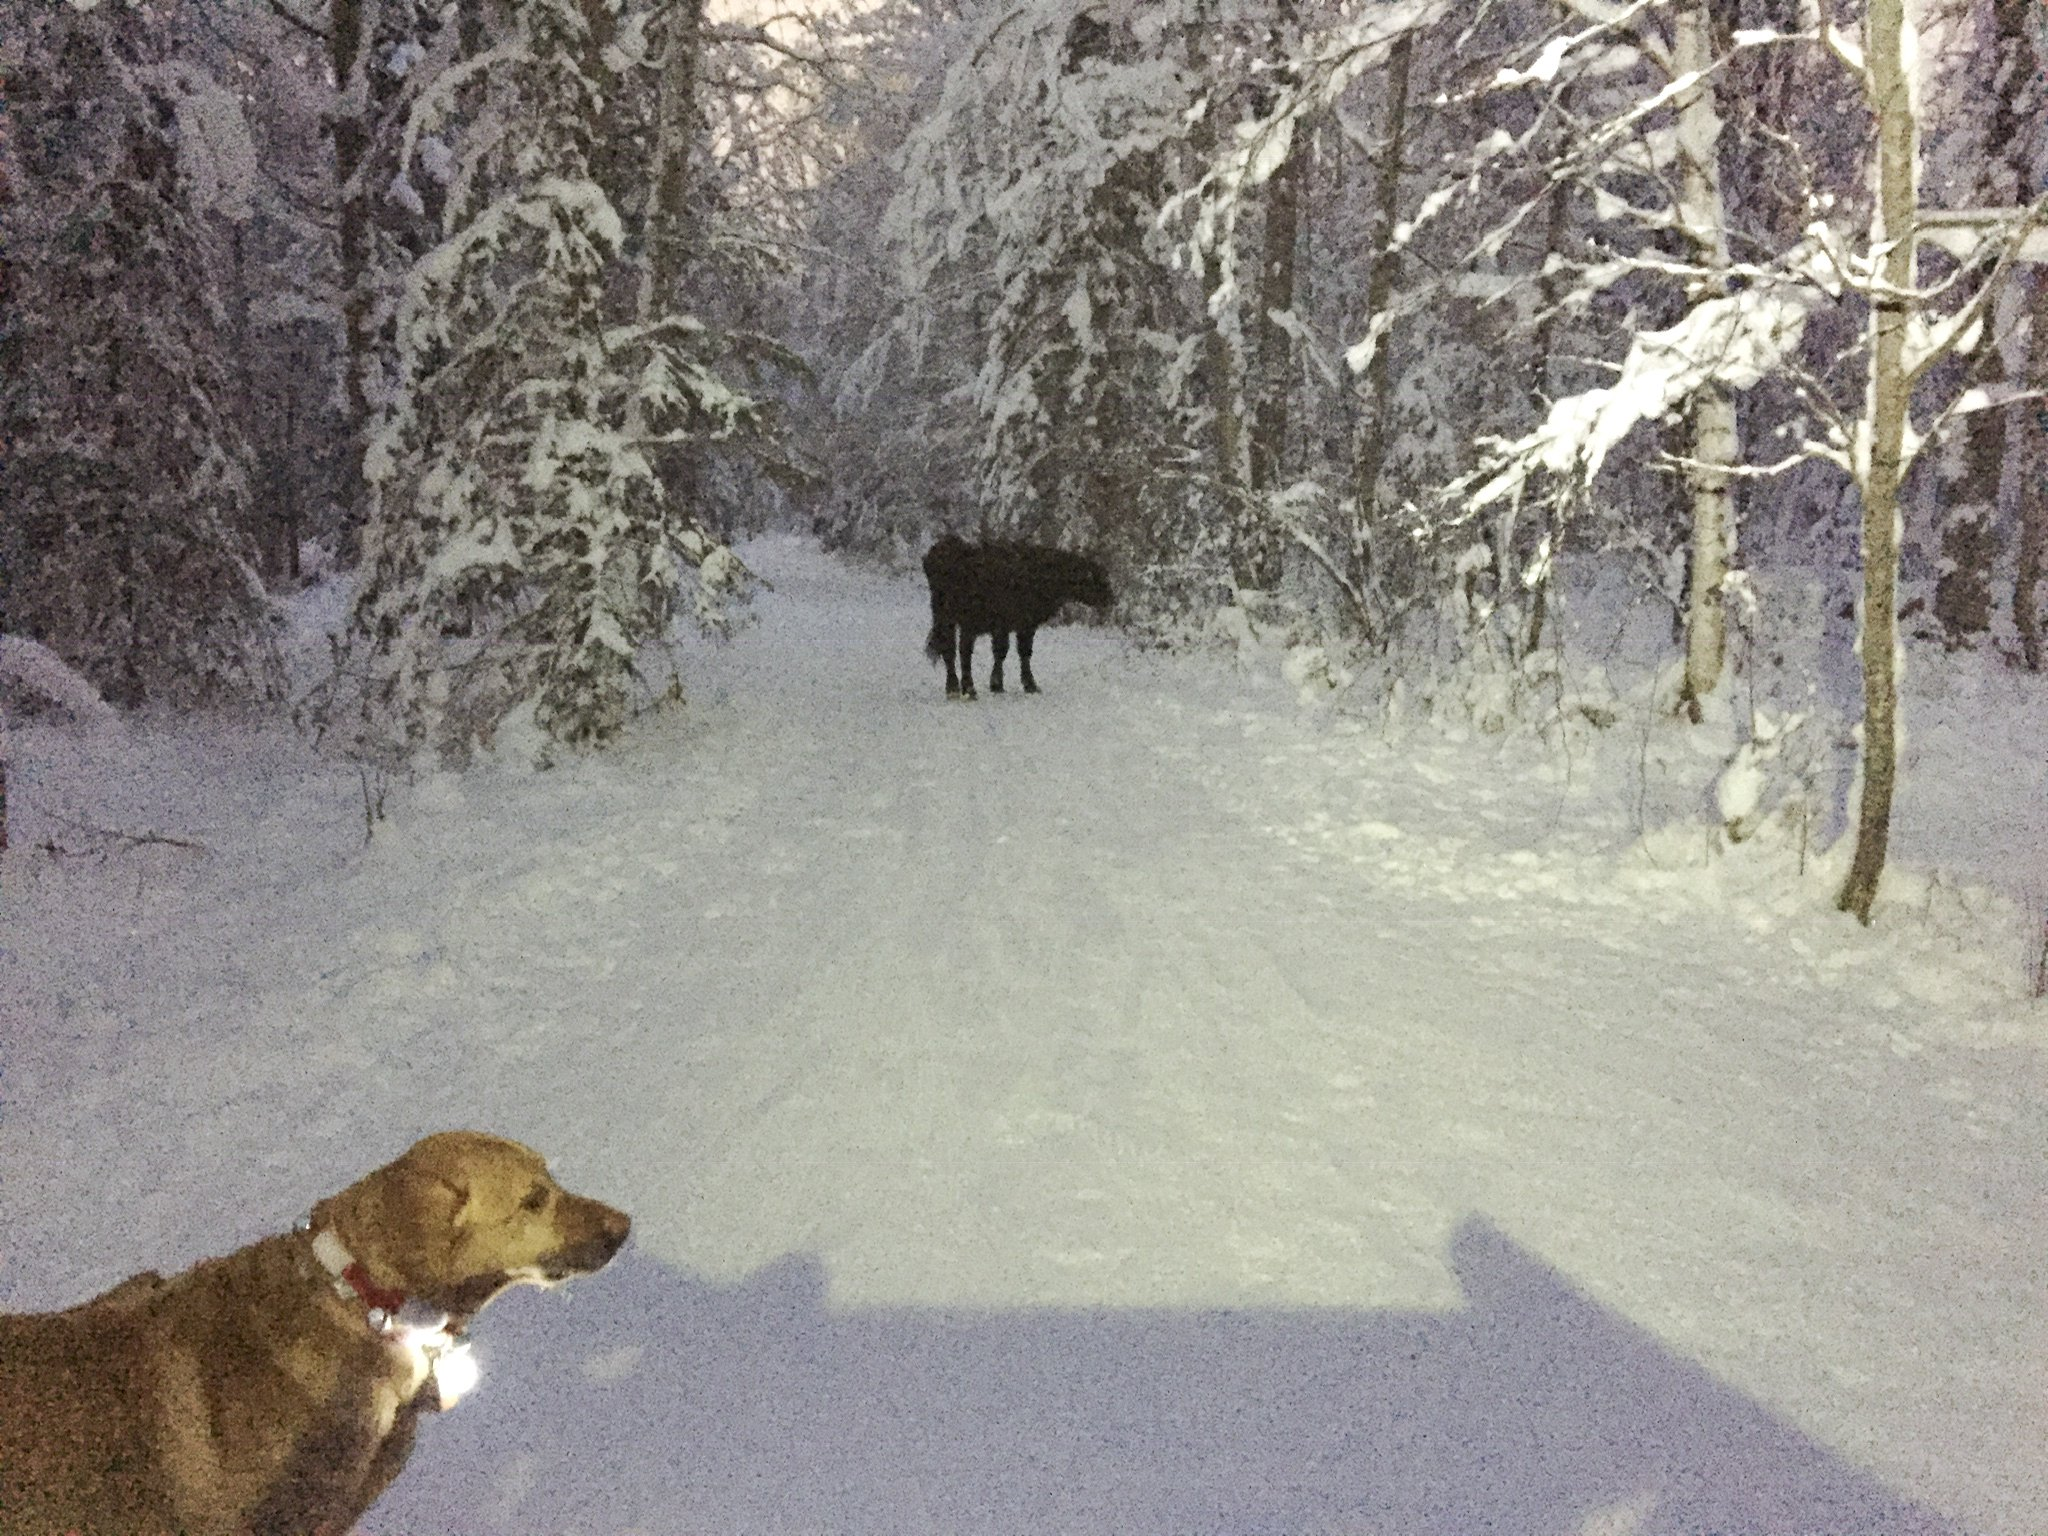 """In this Dec. 26, 2018 photo provided by Meg Kurtagh shows a cow in the middle of on the east side of Anchorage. A rodeo cow named Betsy has evaded capture for six months as she wanders the trails of Alaska's biggest city, the cow's owner said. The 3-year-old cow """"busted out"""" of a pen before participating in junior events at the Father's Day Rodeo in Anchorage, rodeo promoter Frank Koloski told the Anchorage Daily News . Betsy headed to the Hilltop Ski Area and was spotted grazing on slopes during the summer, Koloski said. She then moved to the network of trails that crisscross the Anchorage Hillside when snow fell. (Meg Kurtagh via AP)"""